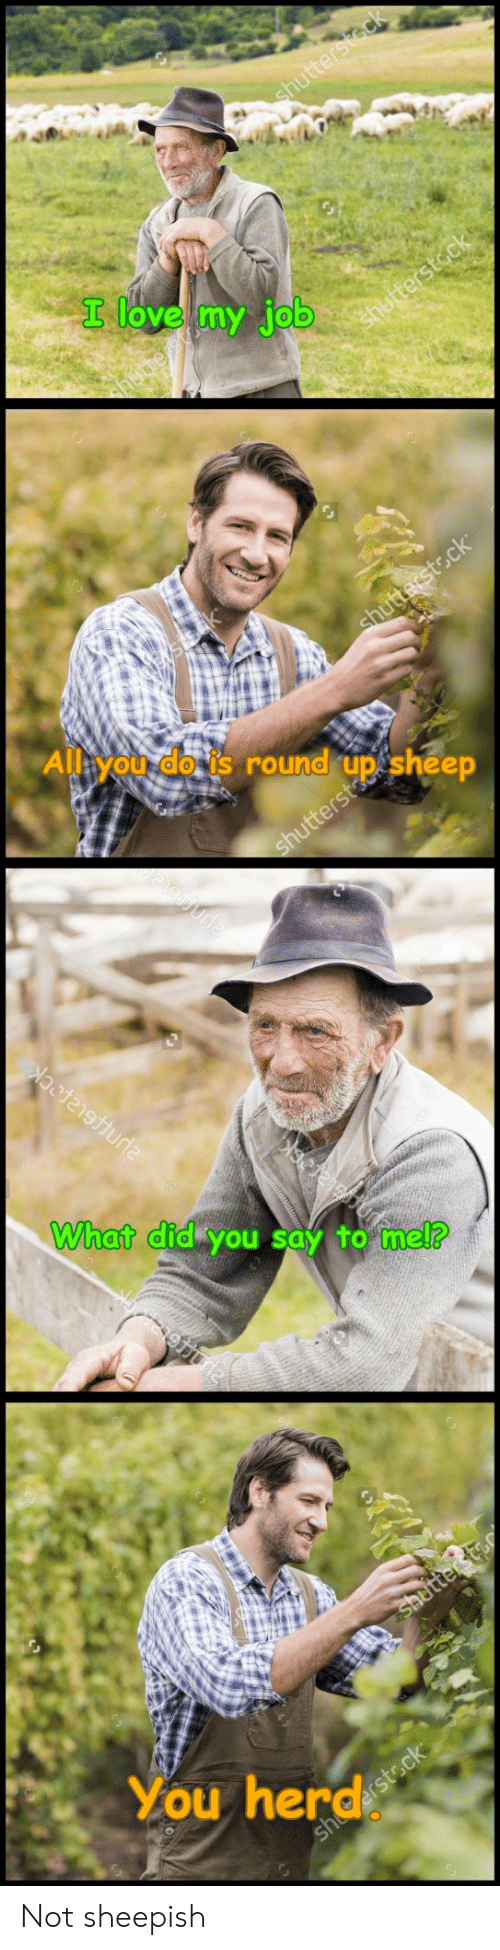 round up: shutterstack  I love my job  shutterstock  ssk  Alleyou do is round up sheep  shutterst.ck  hutterst  What did you say to mel?  Shetter t  You herdsteck Not sheepish